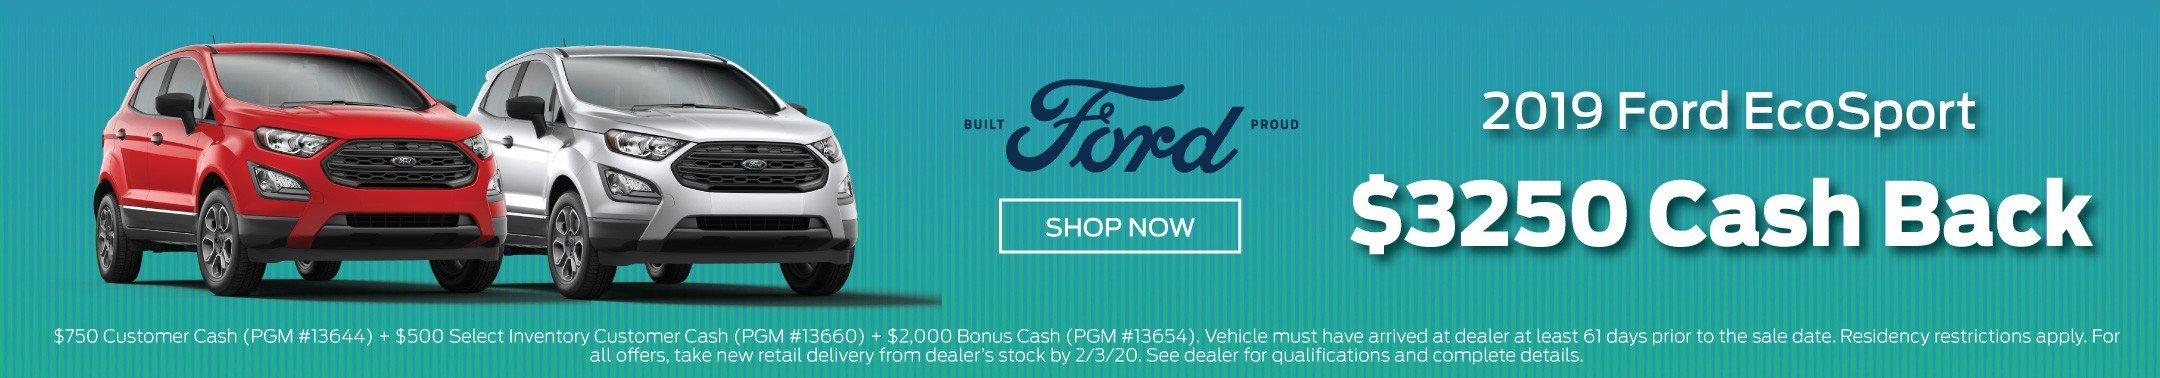 2019 Ford EcoSport Offer 1-2020